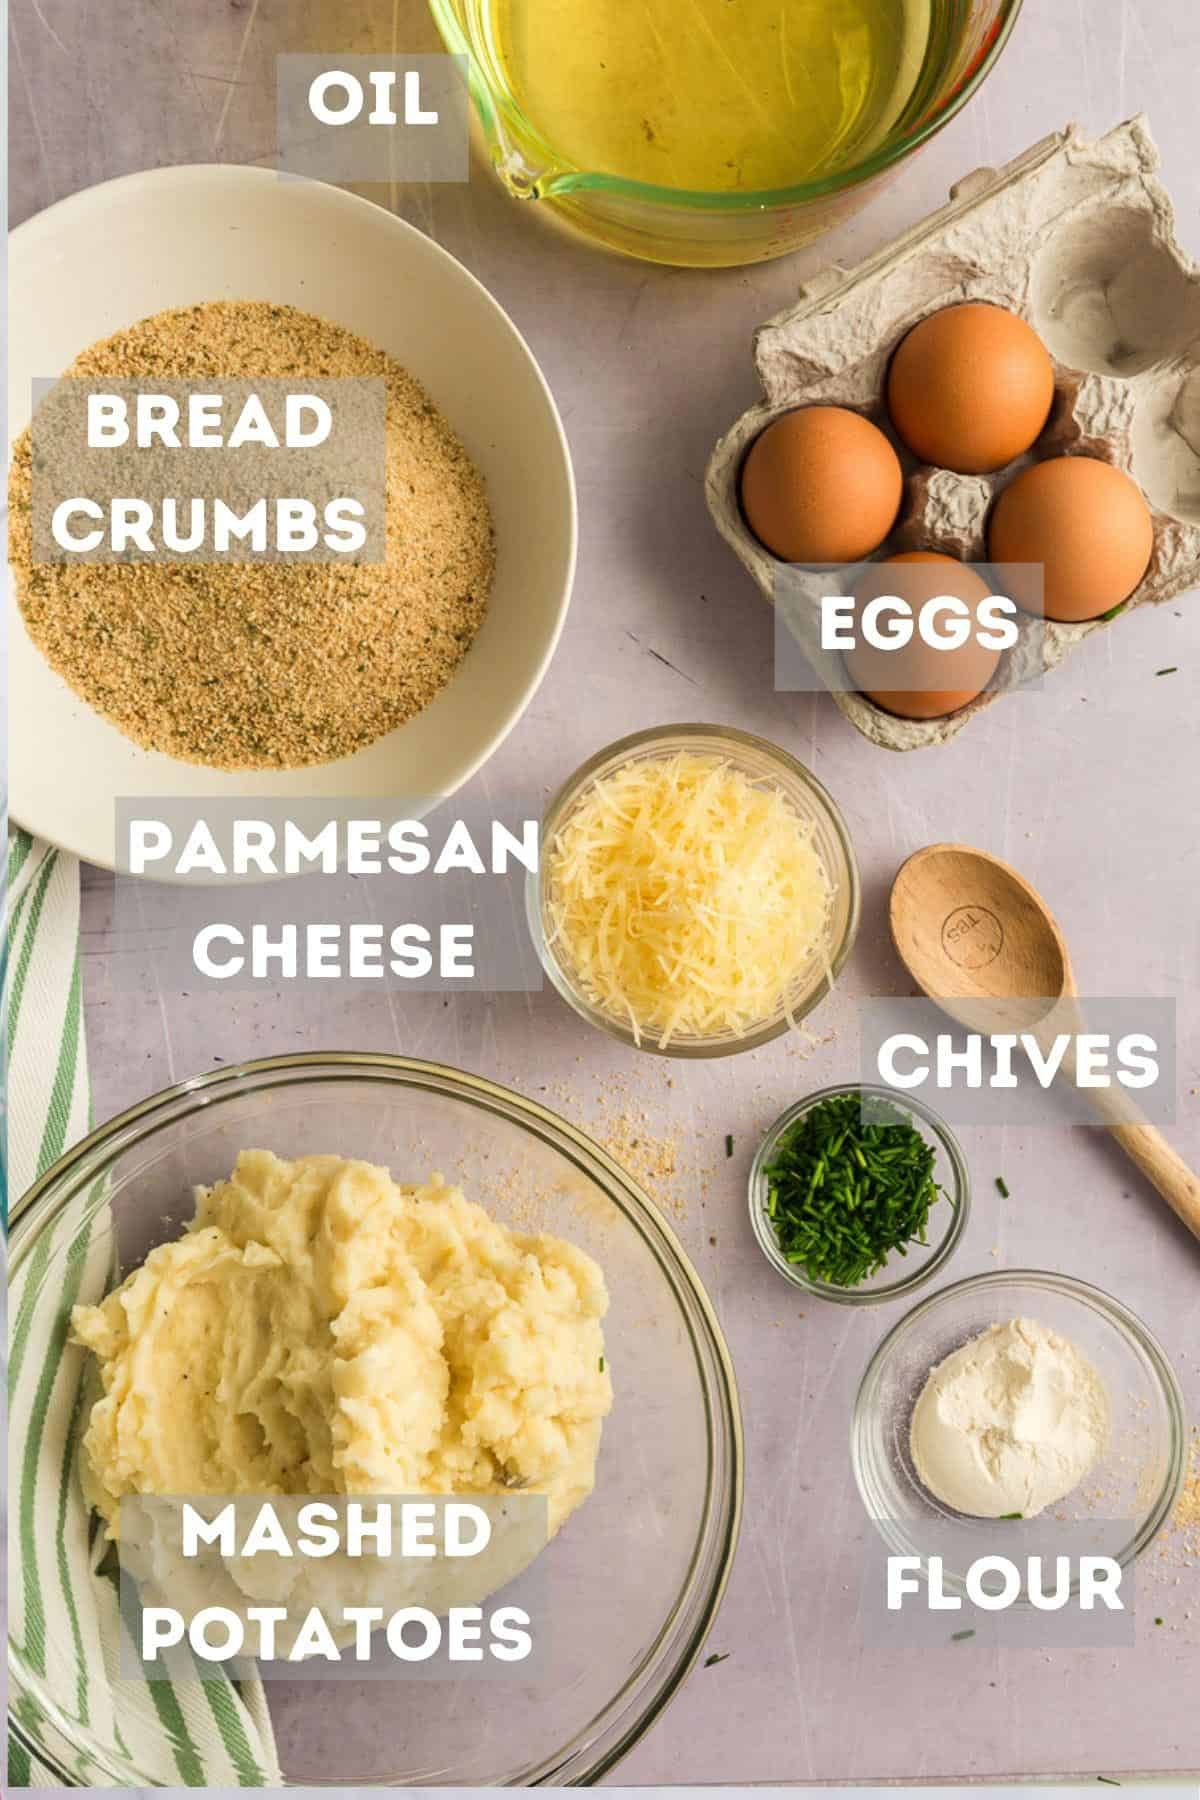 A bowl of mashed potatoes, cheese, and other ingredients for croquettes.